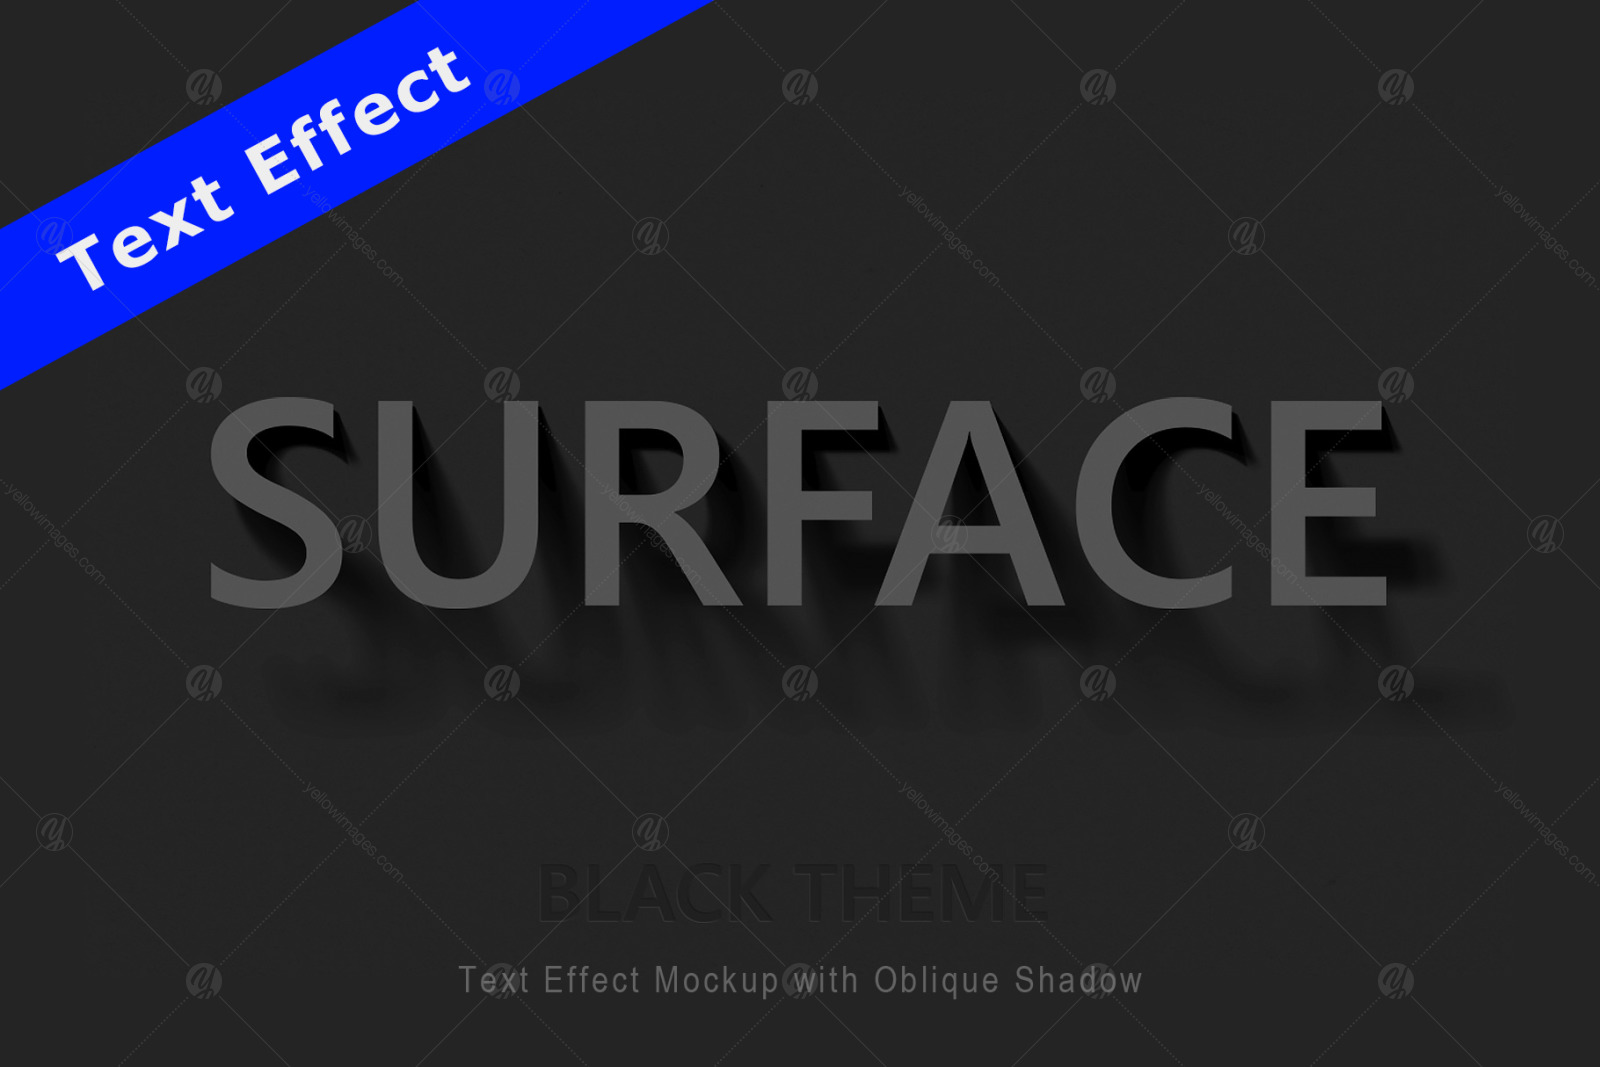 Text Effect Mockup with Oblique Shadow